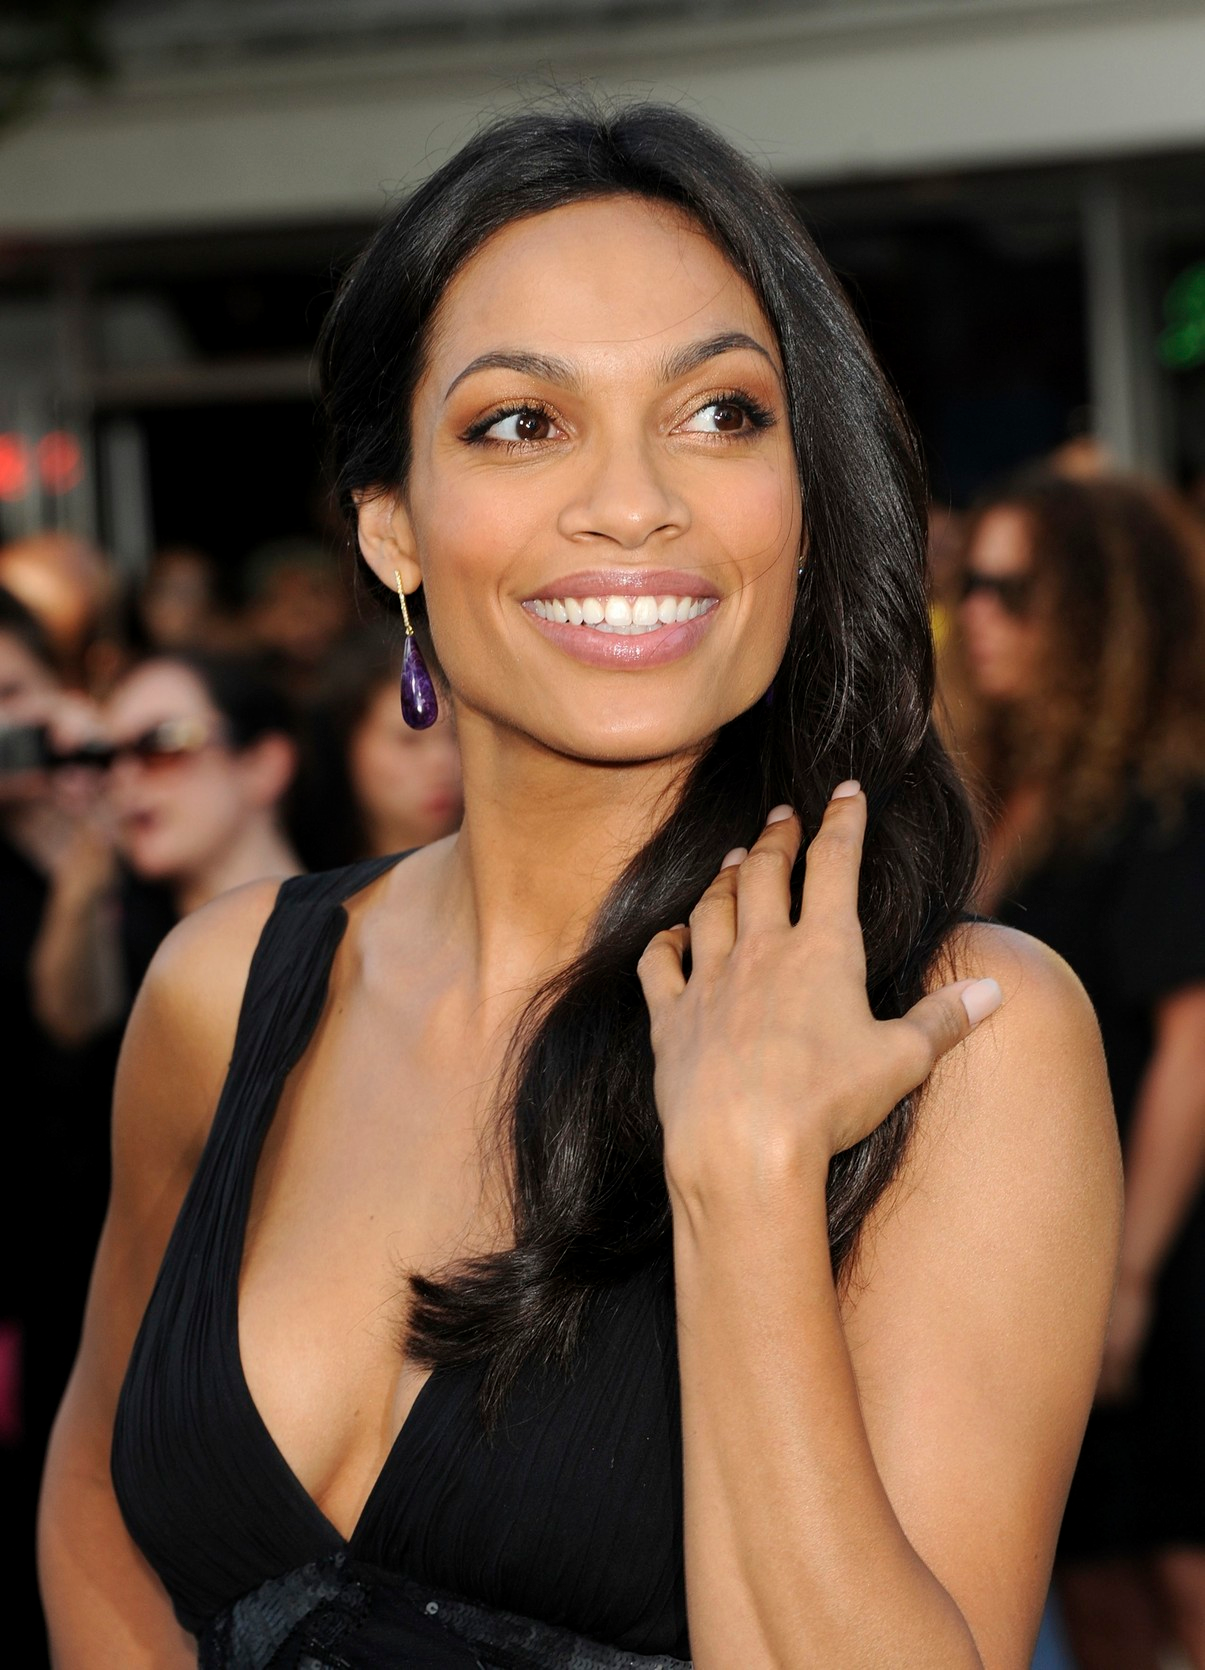 Rosario Dawson nudes (54 foto and video), Ass, Hot, Instagram, braless 2018